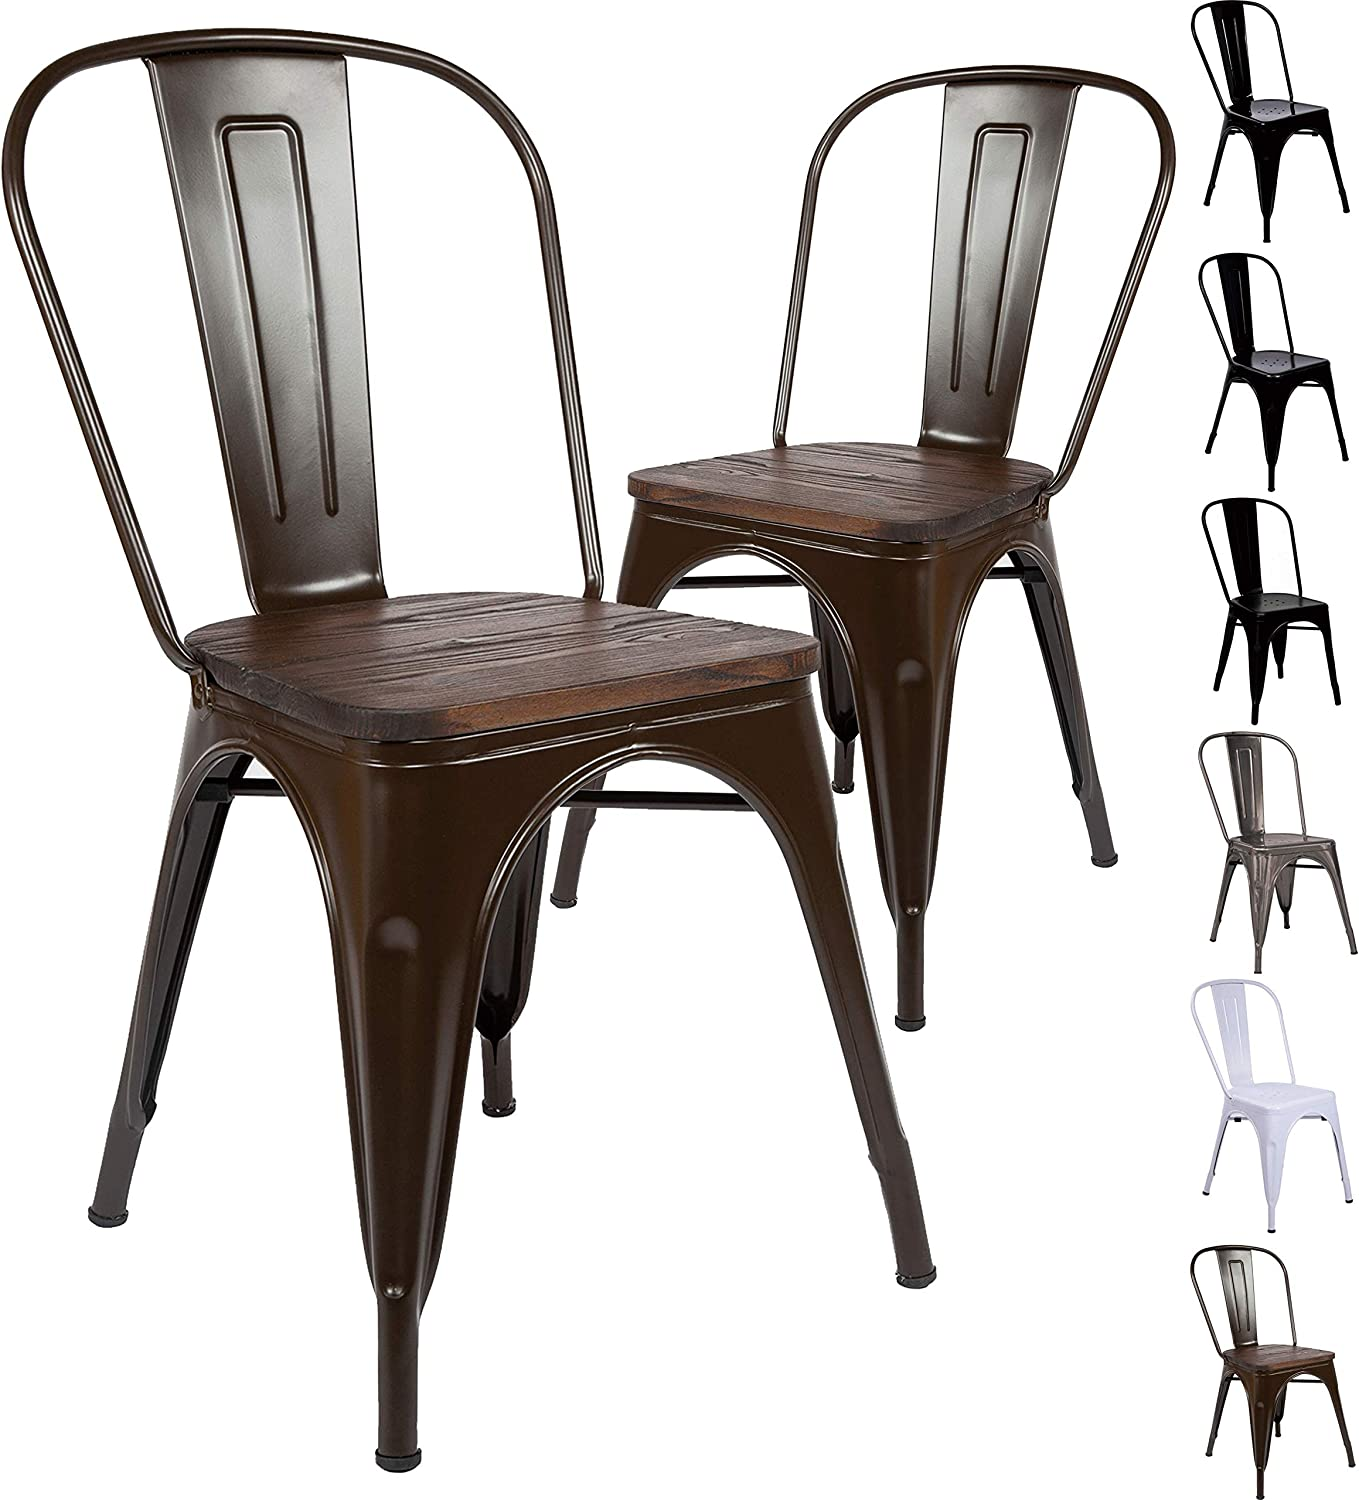 Set Of 6 Tolix Dining Chair Vintage Style Stackable Metal Chairs With Brown  Wooden Panel, Perfect for Indoor And Outdoor Use, Home Office Kitchen